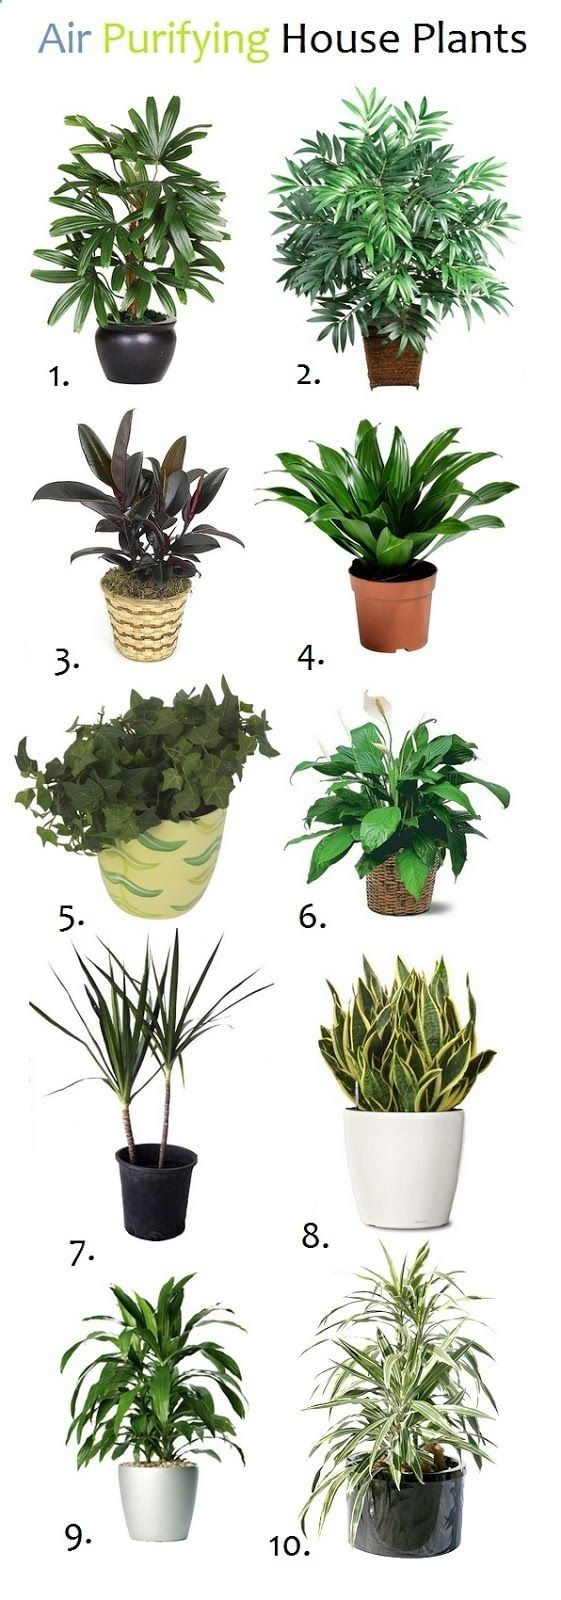 Is it possible to have too many house plants?